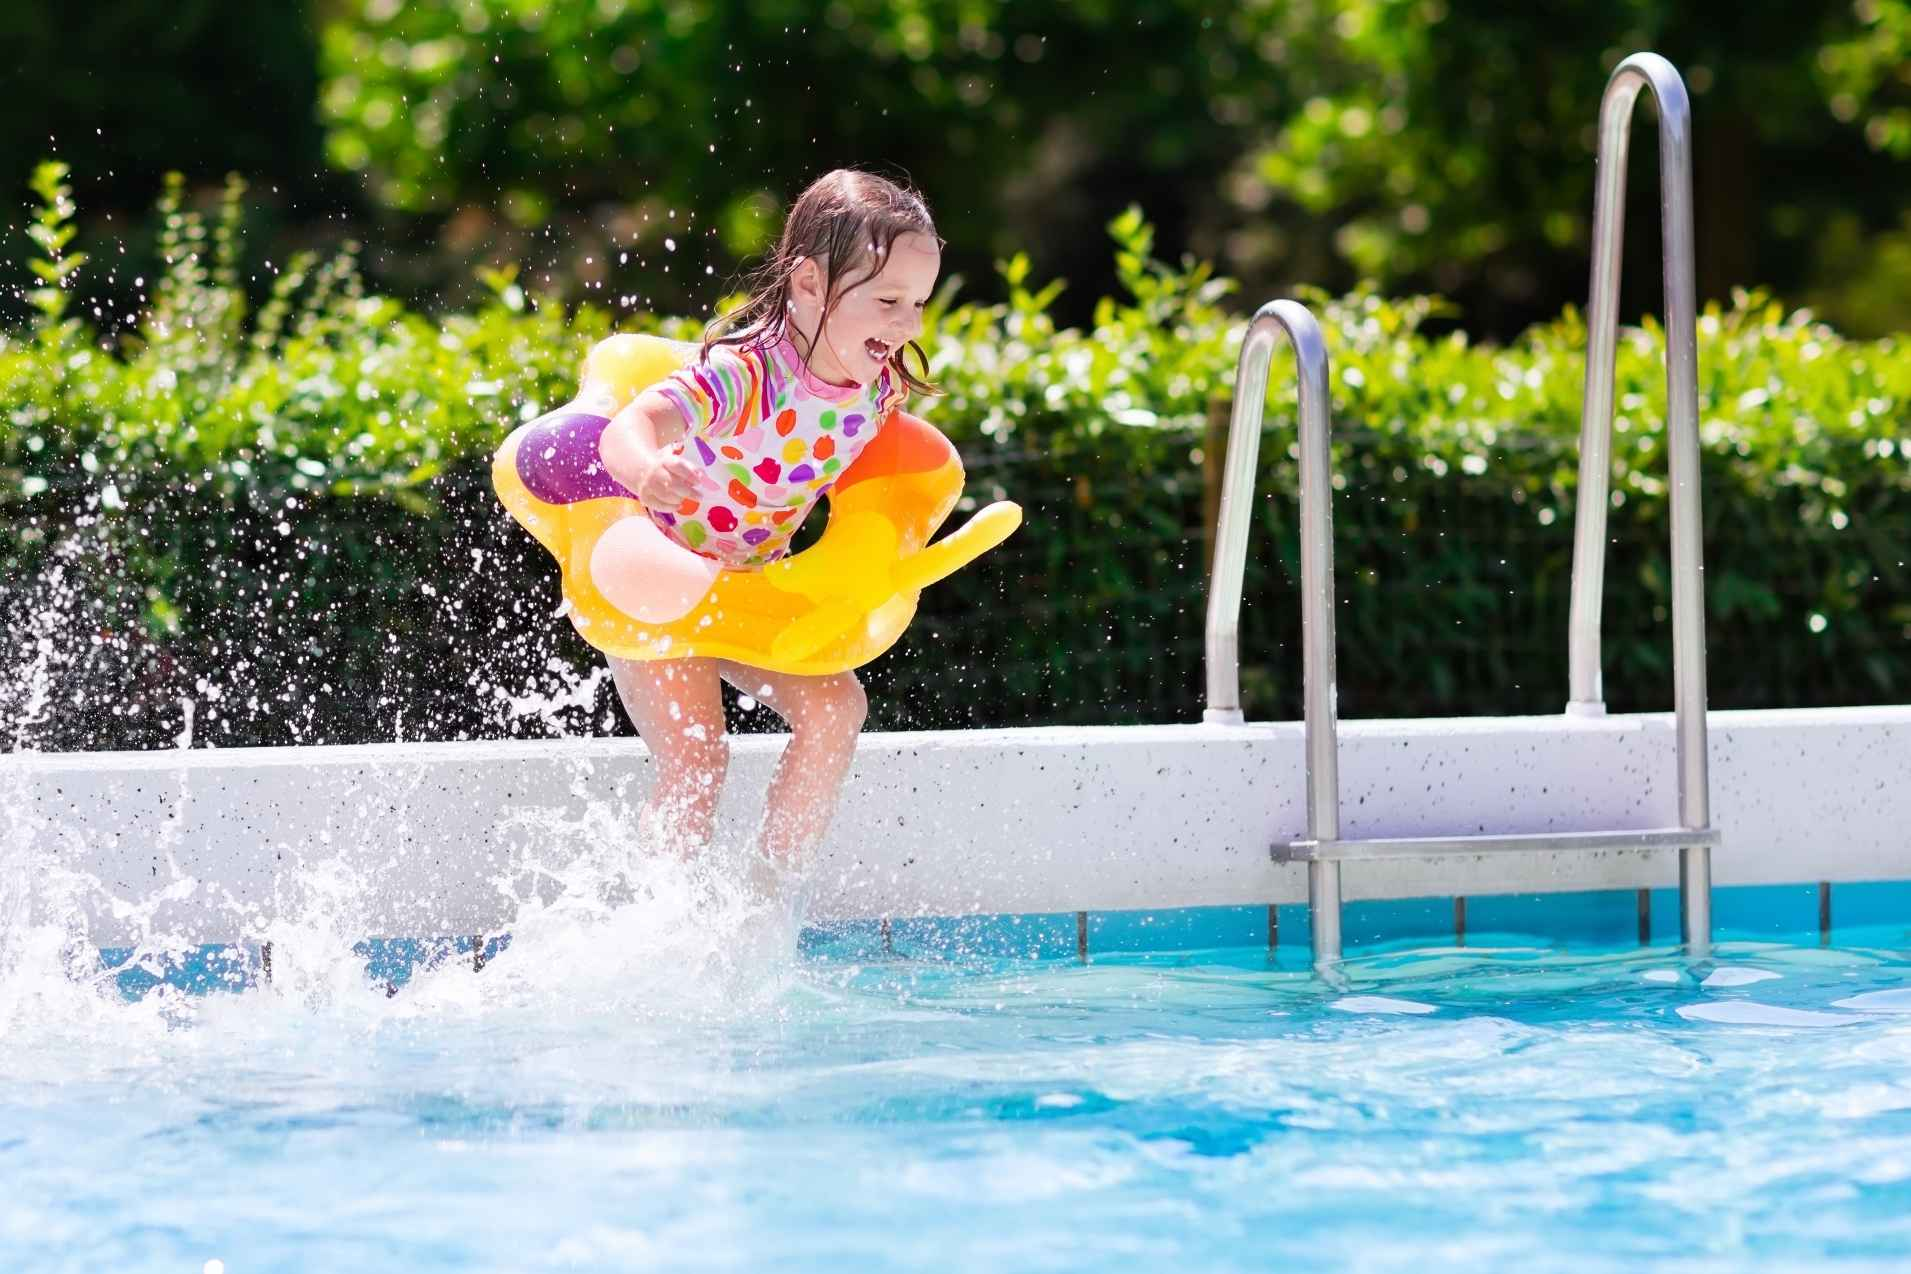 Little girl jumping into pool.